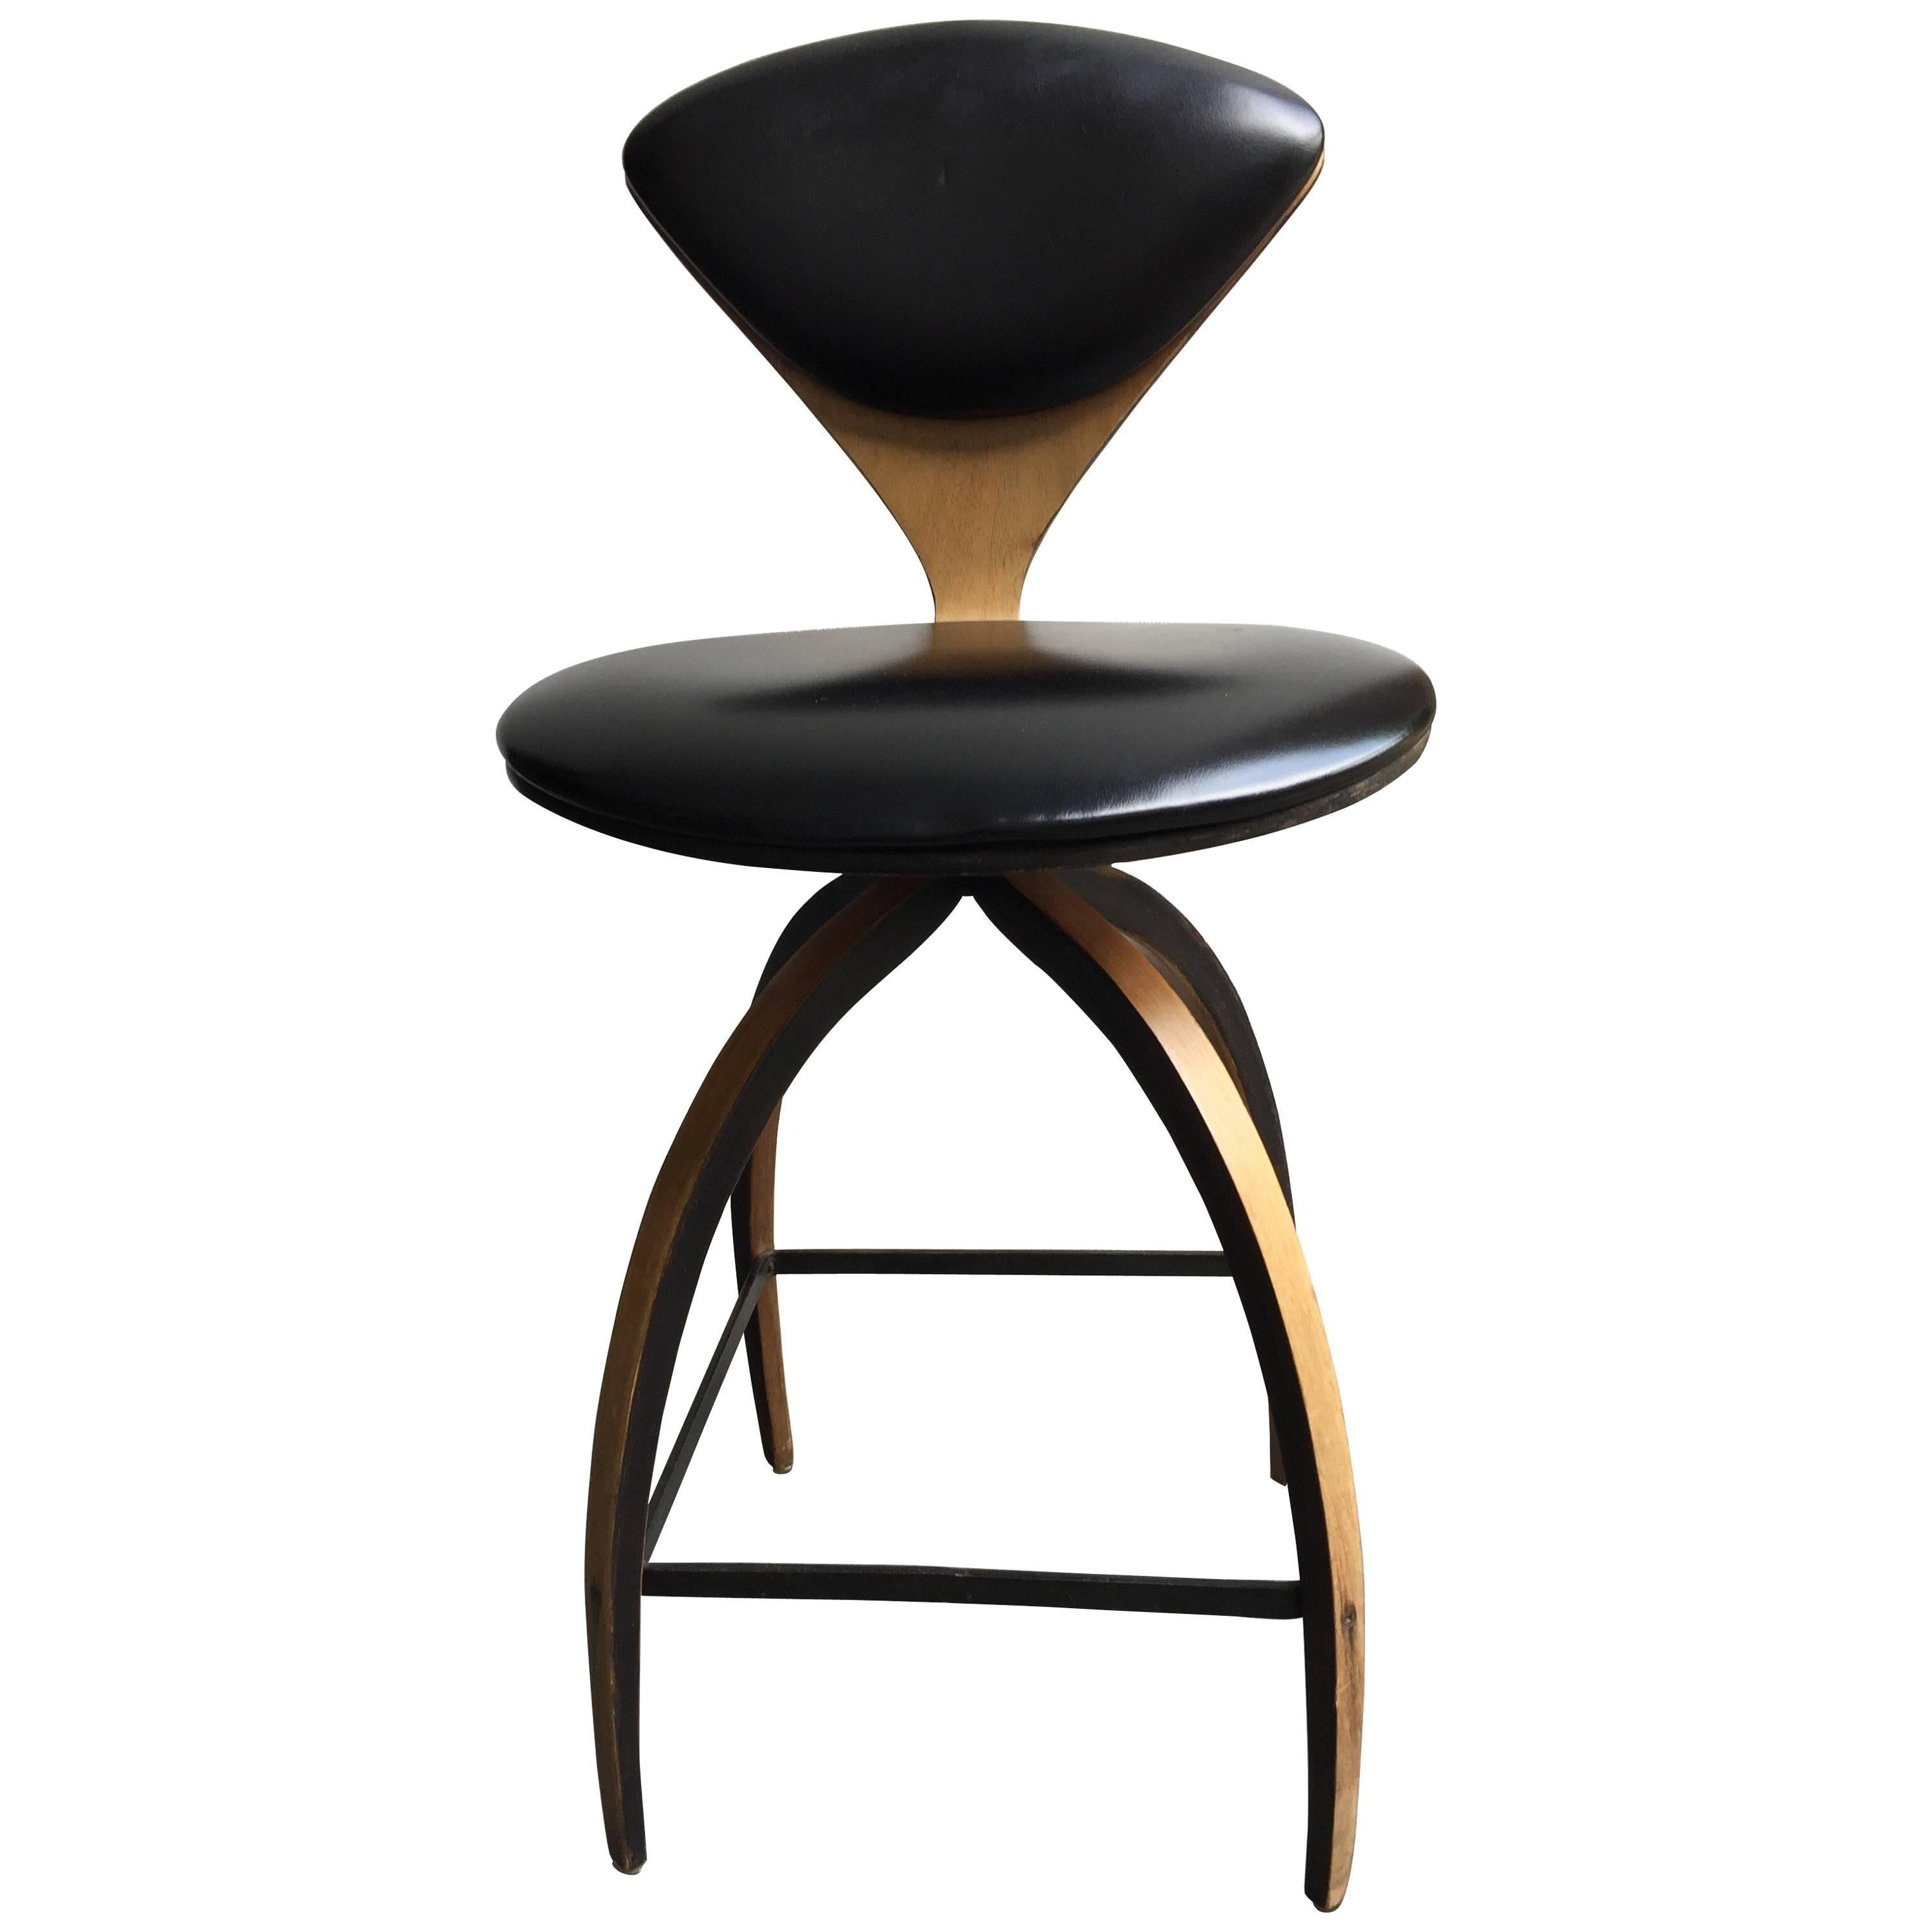 plycraft of early bentwood swivel bar stool designed for norman cherner 1